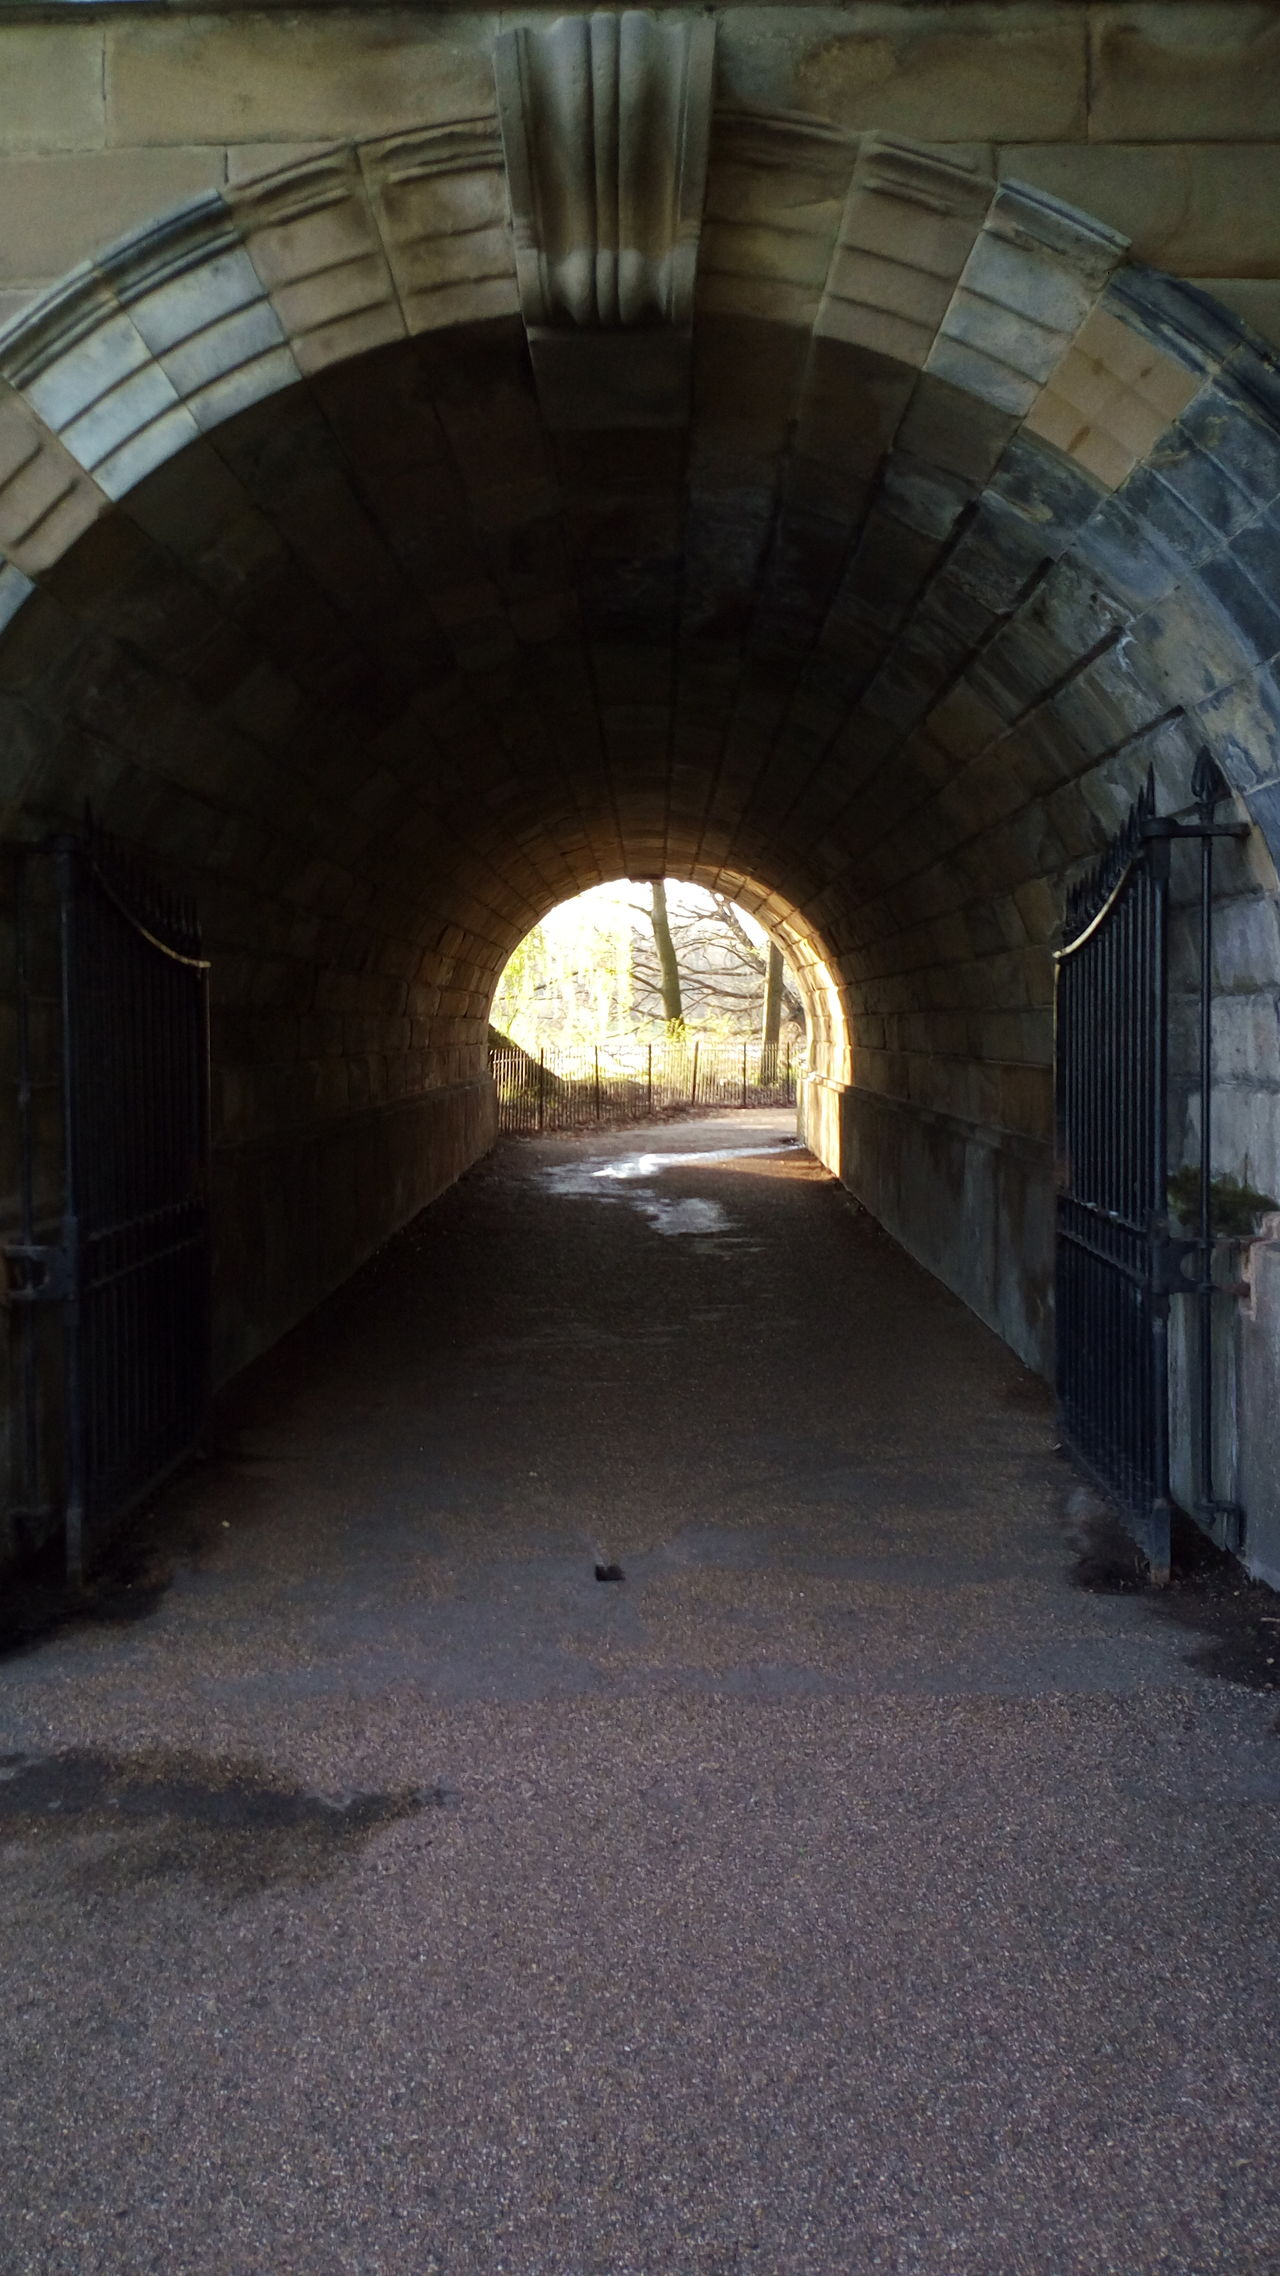 Tunnel Architecture Built Structure